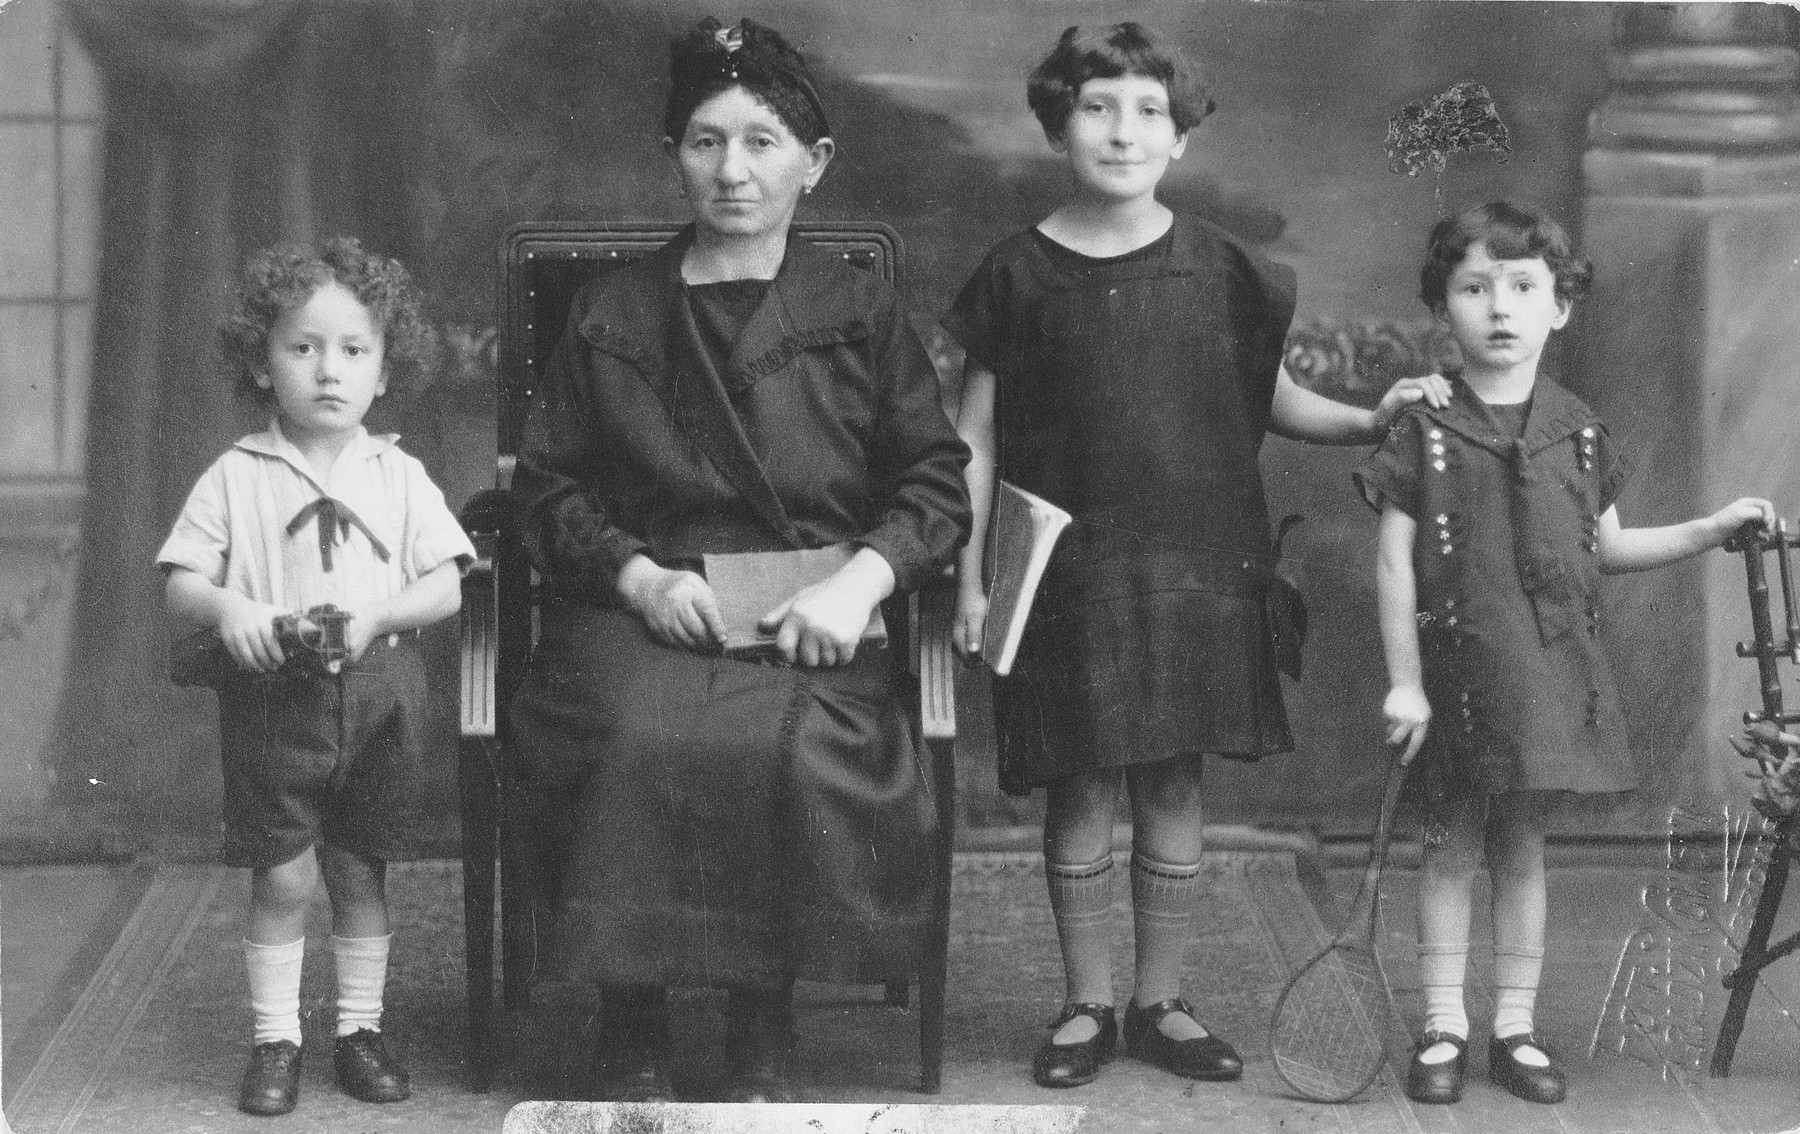 Studio portrait of three Jewish children with their grandmother in Dabrowa Gornicza, Poland.  Pictured from left to right are: Moniek, his grandmother (name unknown), Fela and Sabina Szeps.